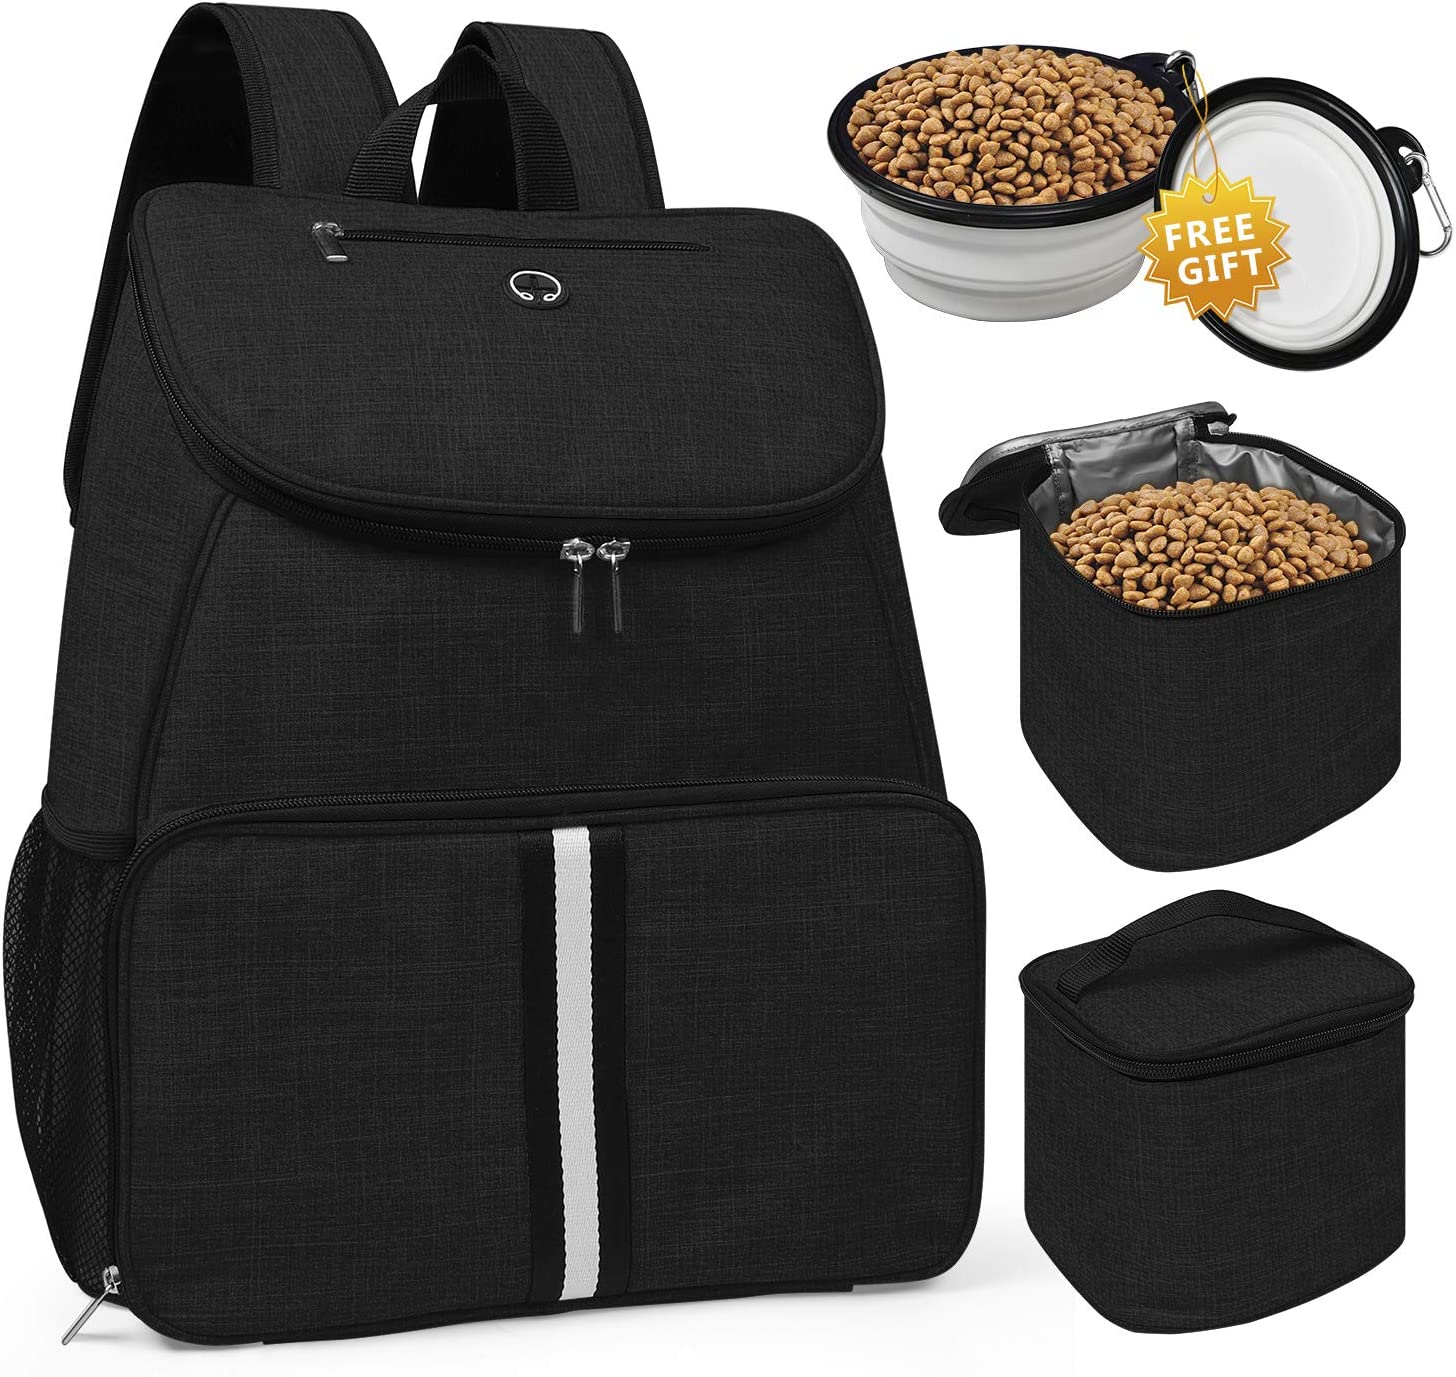 BAGLHER 丨Dog Travel Bag,Airline Approved Pet Supplies Backpack,Dog Travel Backpack with 2 Silicone Collapsible Bowls and 2 Food Baskets. Black